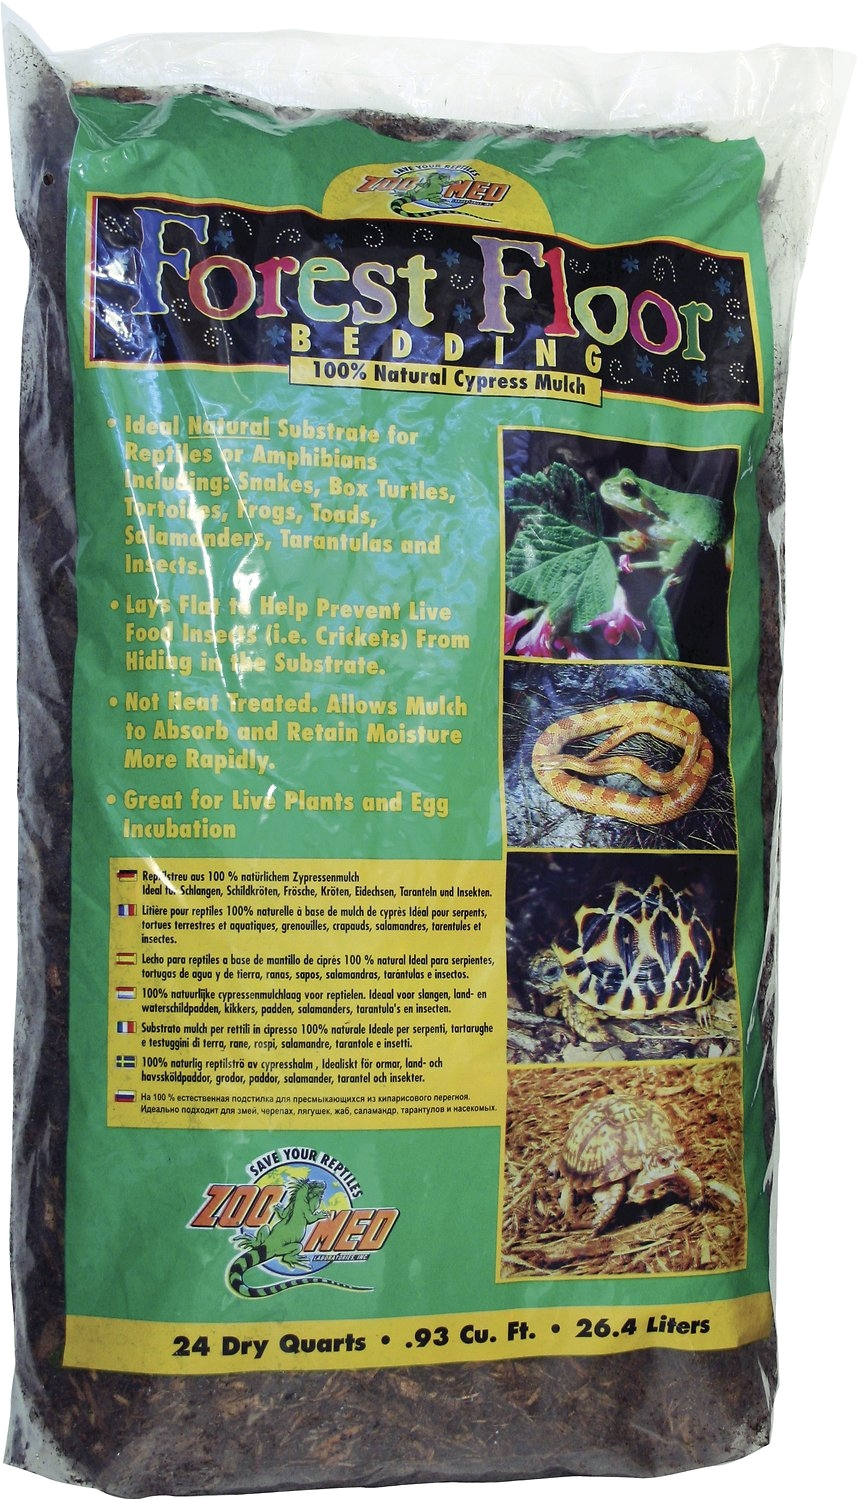 Forest Floor Cypress Mulch Zoo Med forest Floor Natural Cypress Mulch Reptile Bedding 24 Qt